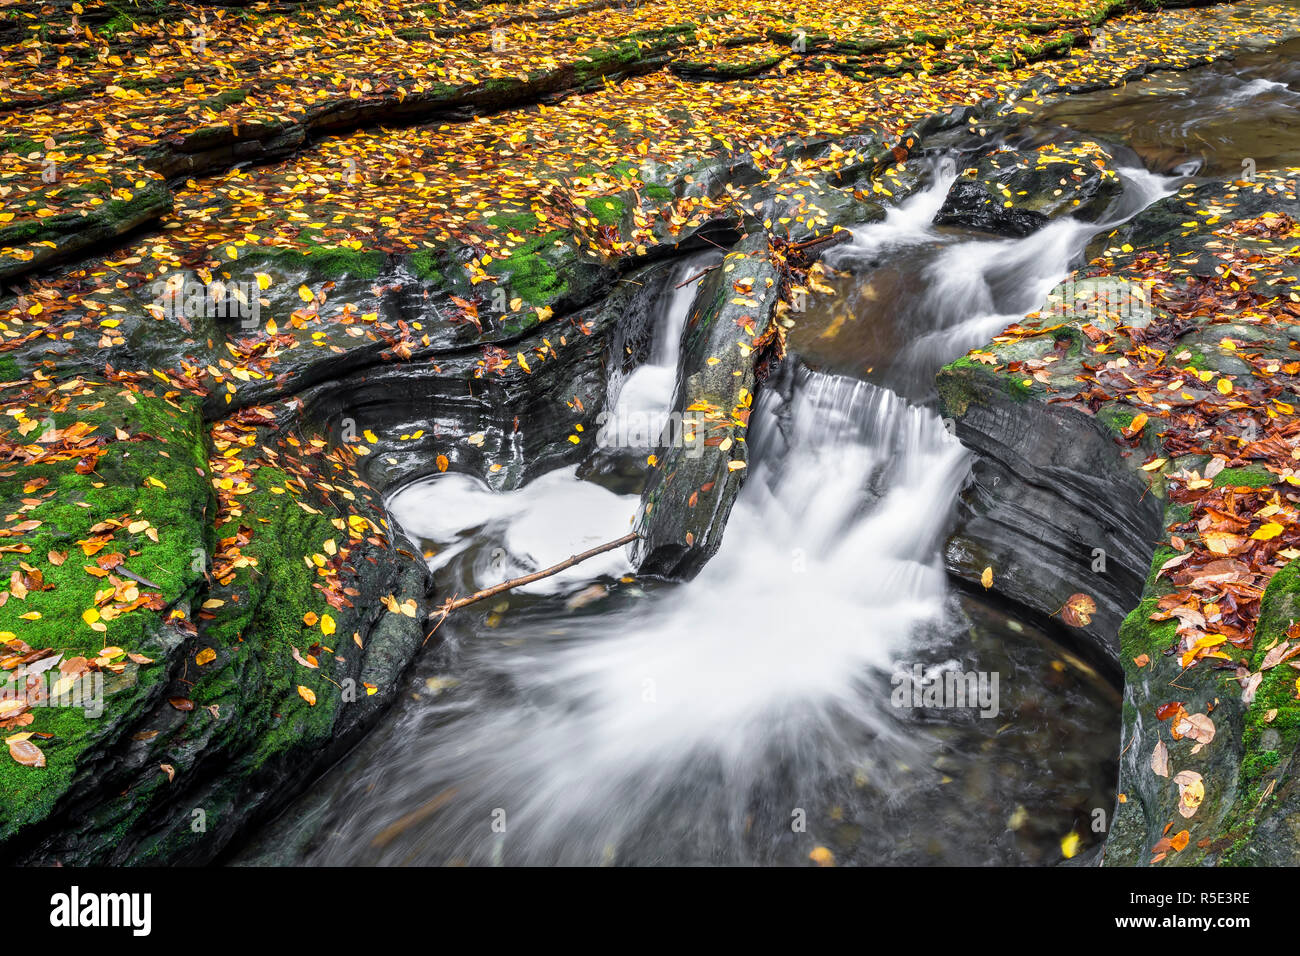 Whitewater splashes through rocky ledges scattered with colorful fallen autumn leaves in Watkins Glen State Park, New York. Stock Photo